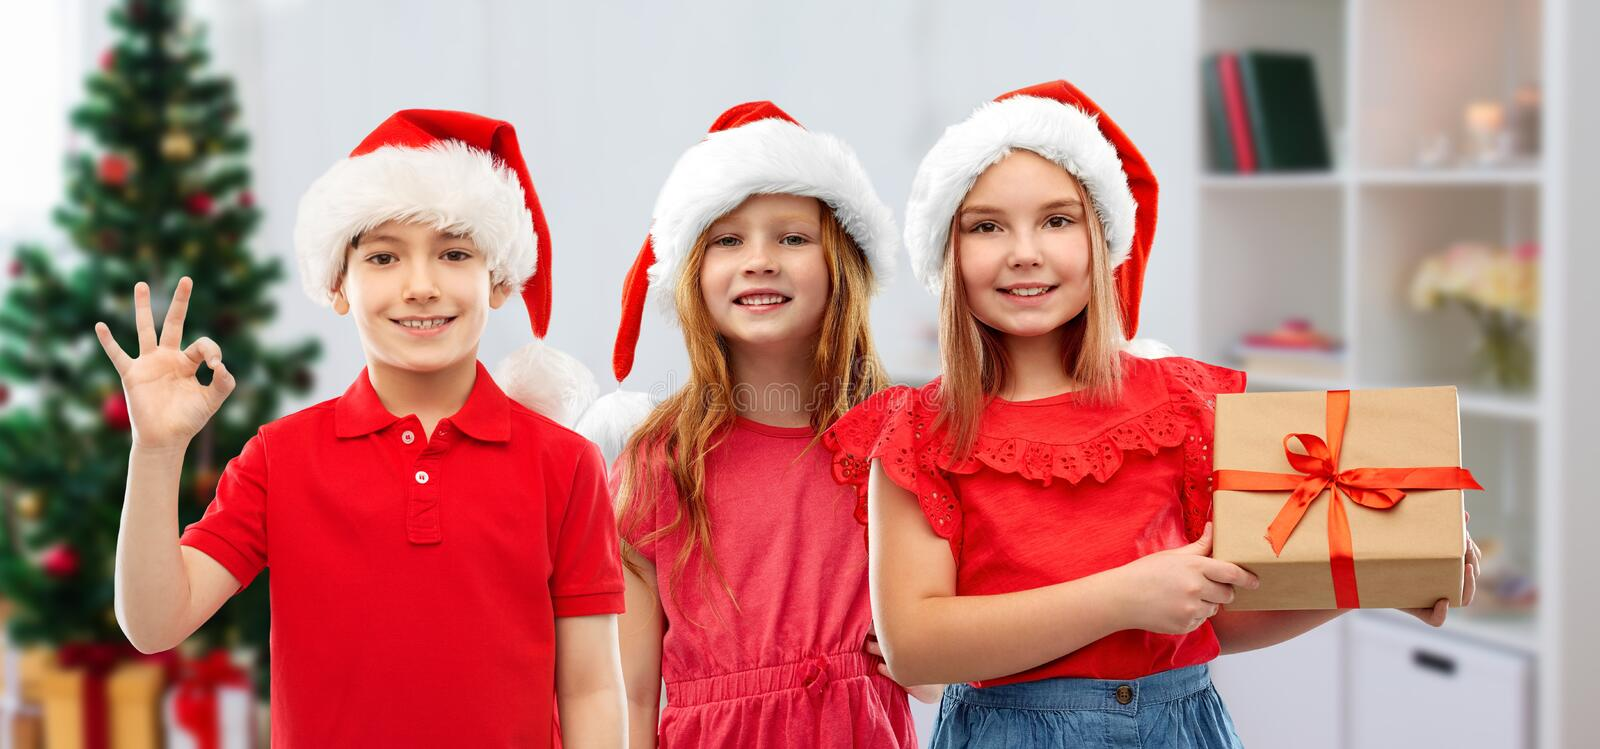 Children in santa helper hats with christmas gift. Christmas, holidays and childhood concept - smiling little children in santa helper hats with gift box showing royalty free stock photos